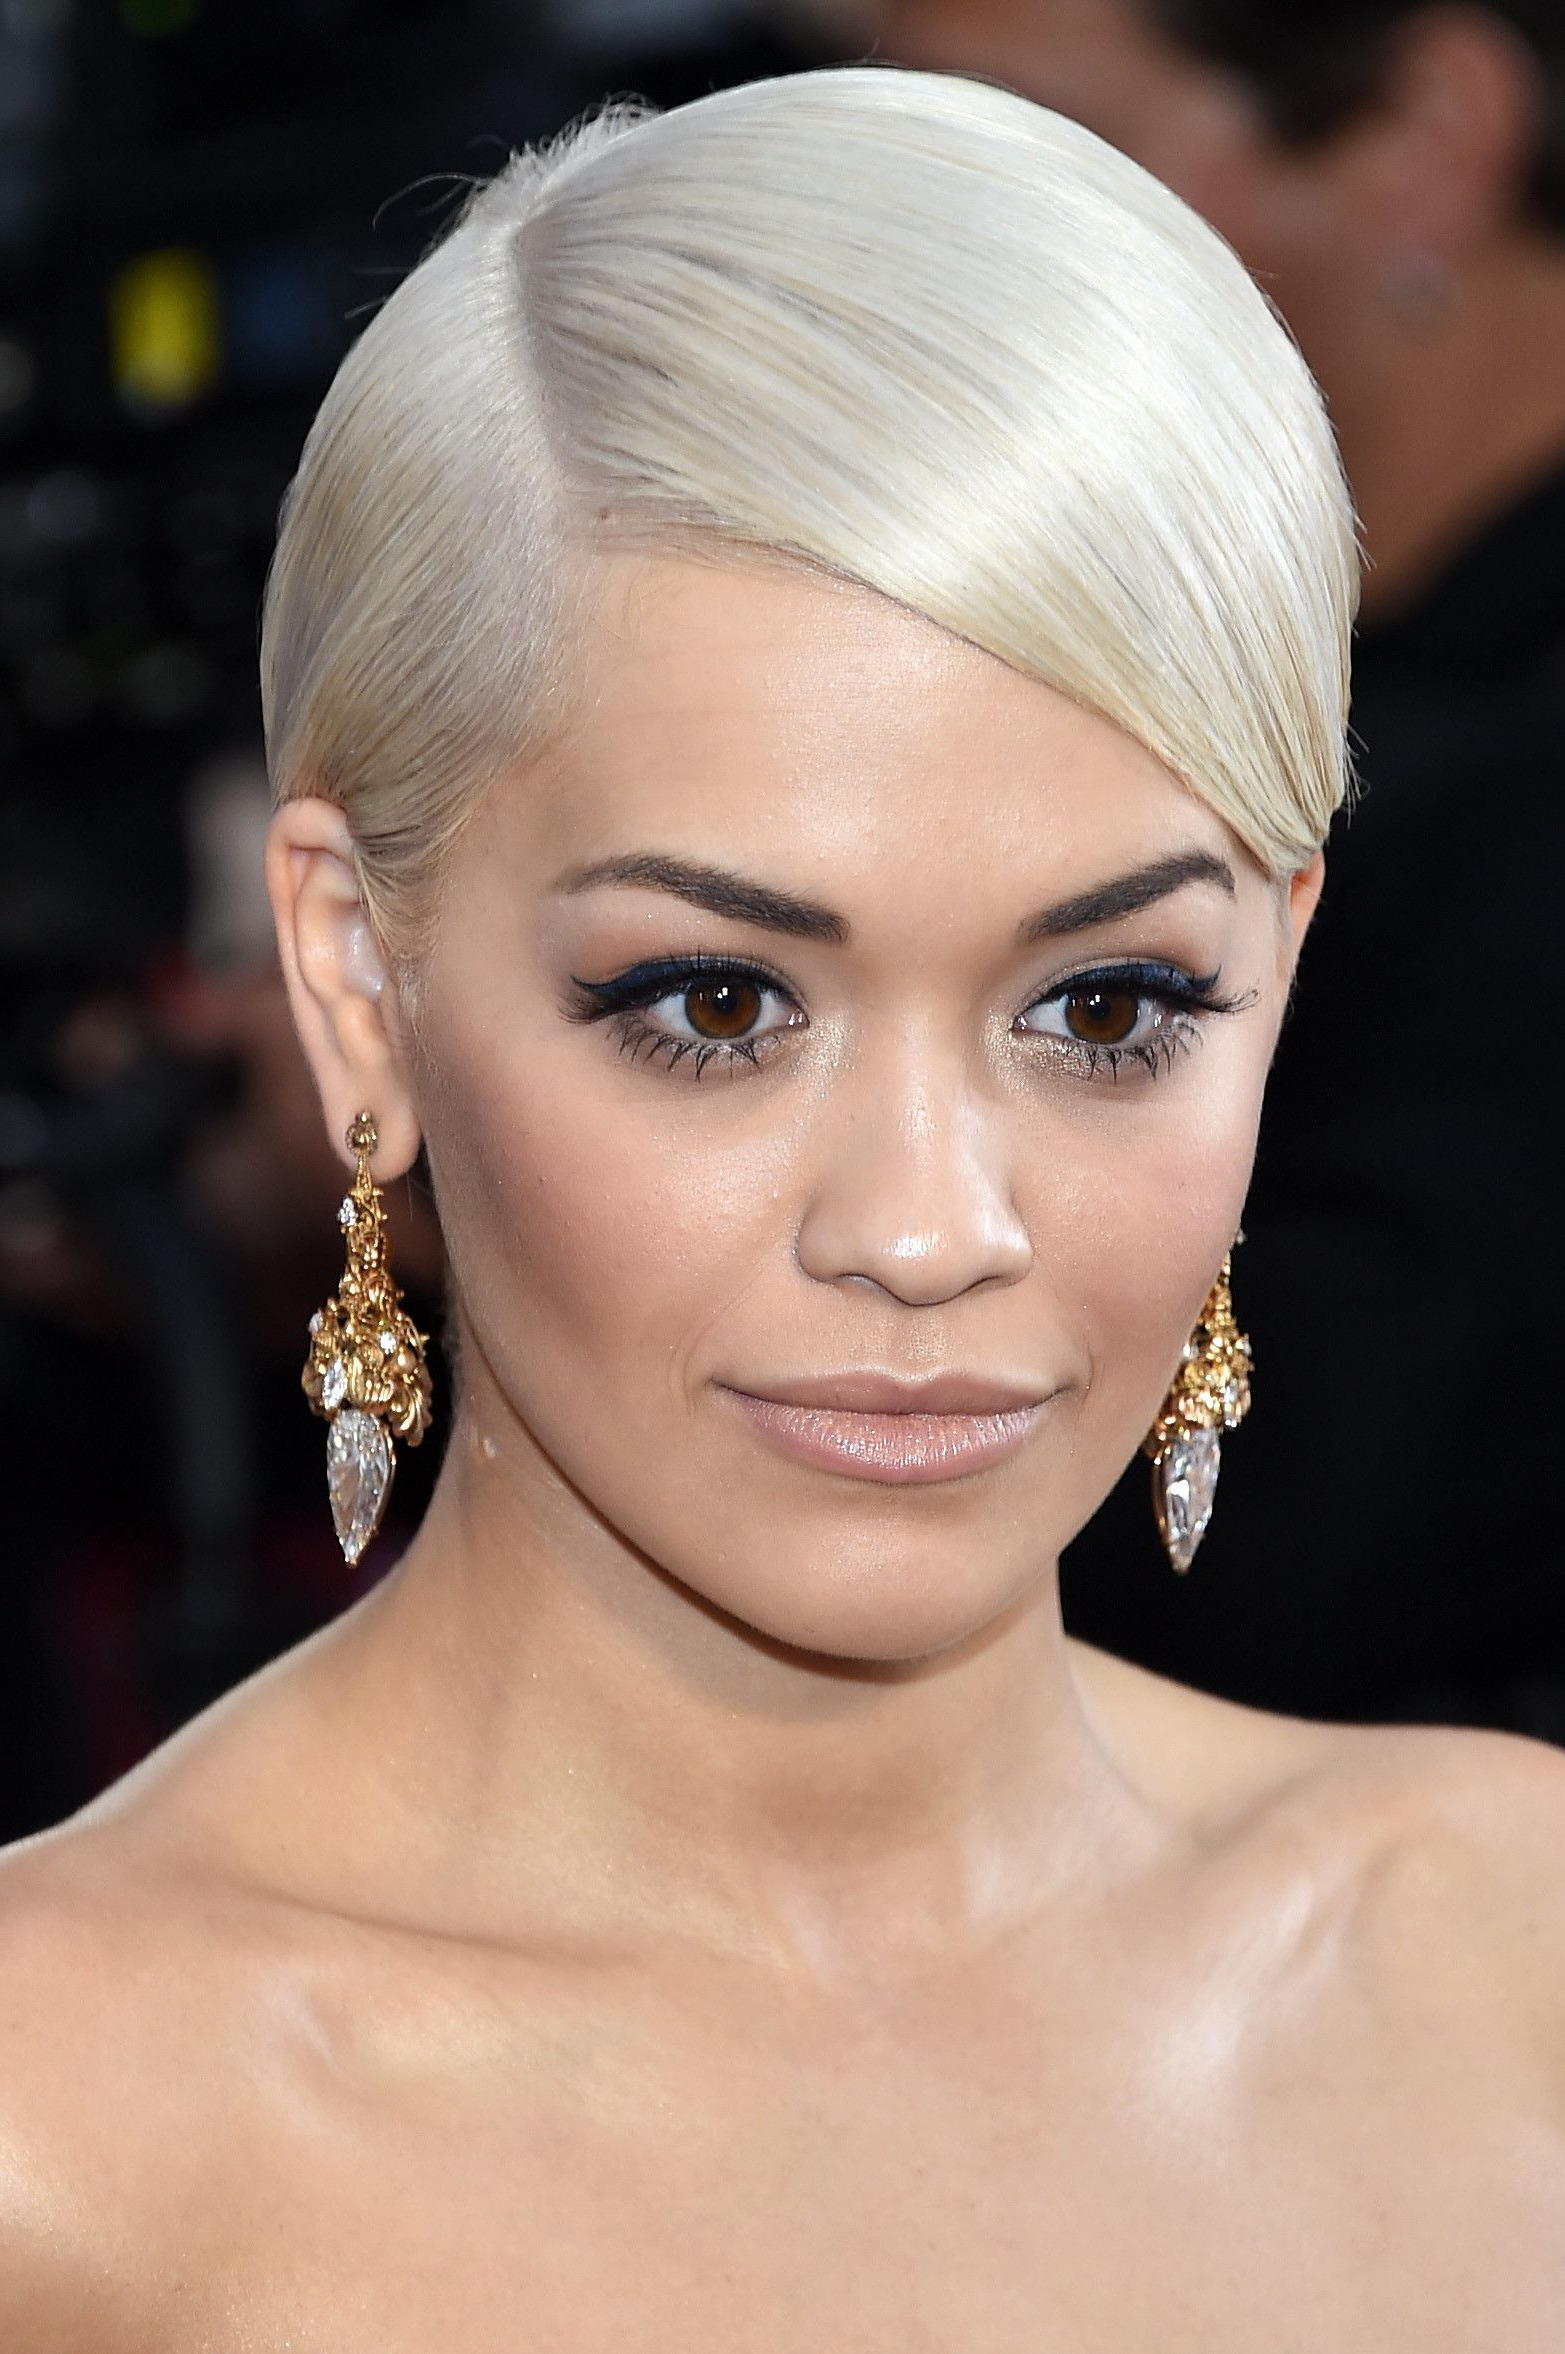 64 Short Hairstyles That Will Make You Want To Chop It All Off Pertaining To Rita Ora Short Hairstyles (Gallery 13 of 25)